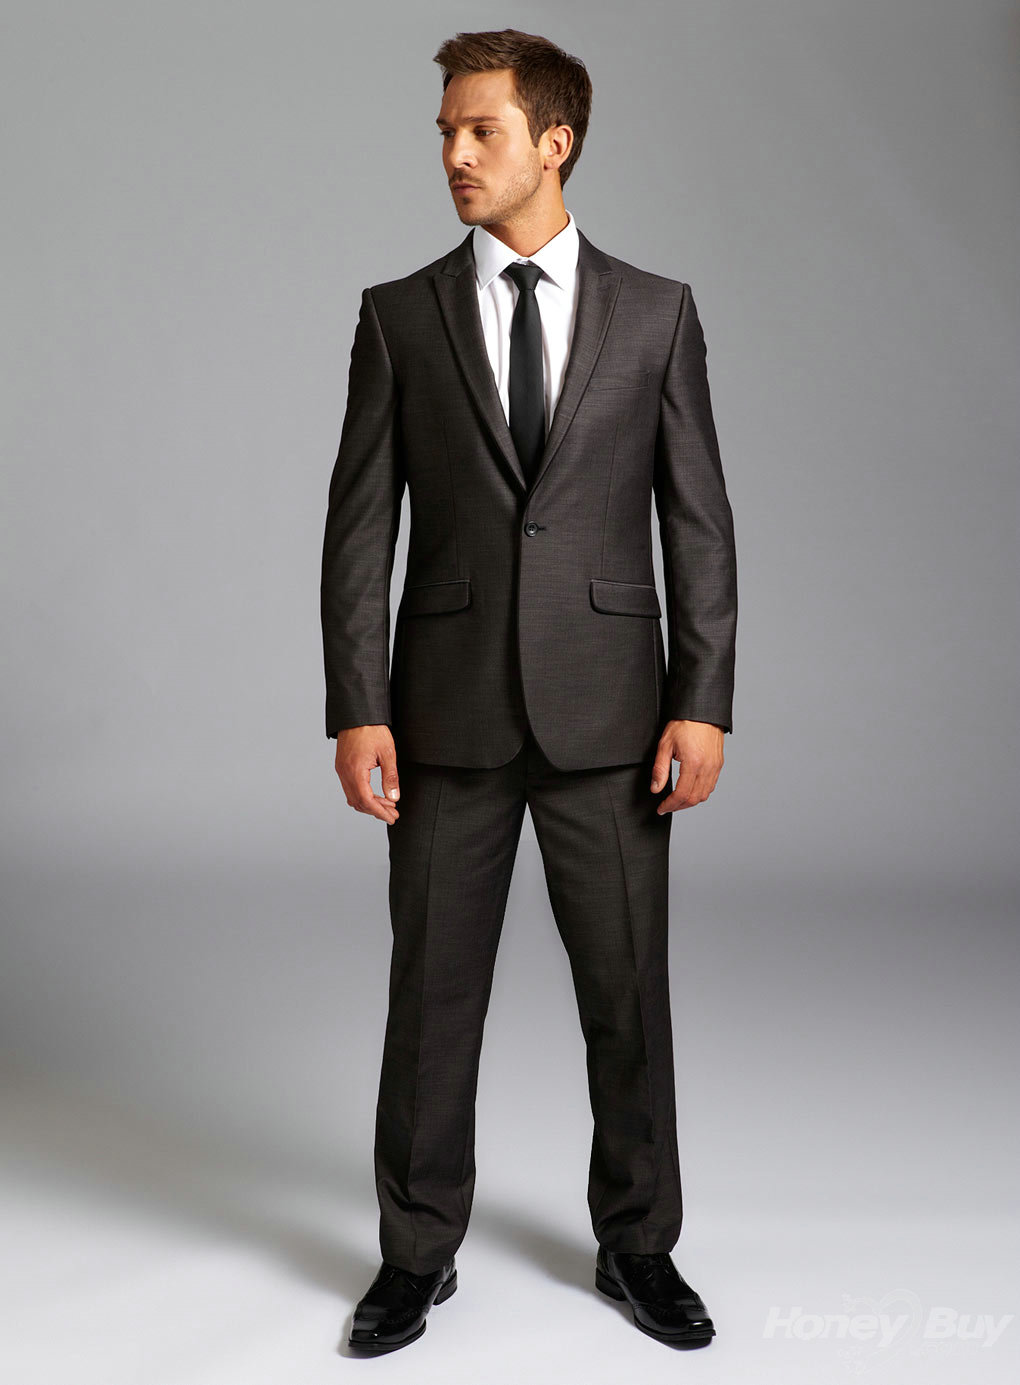 Image result for business suit